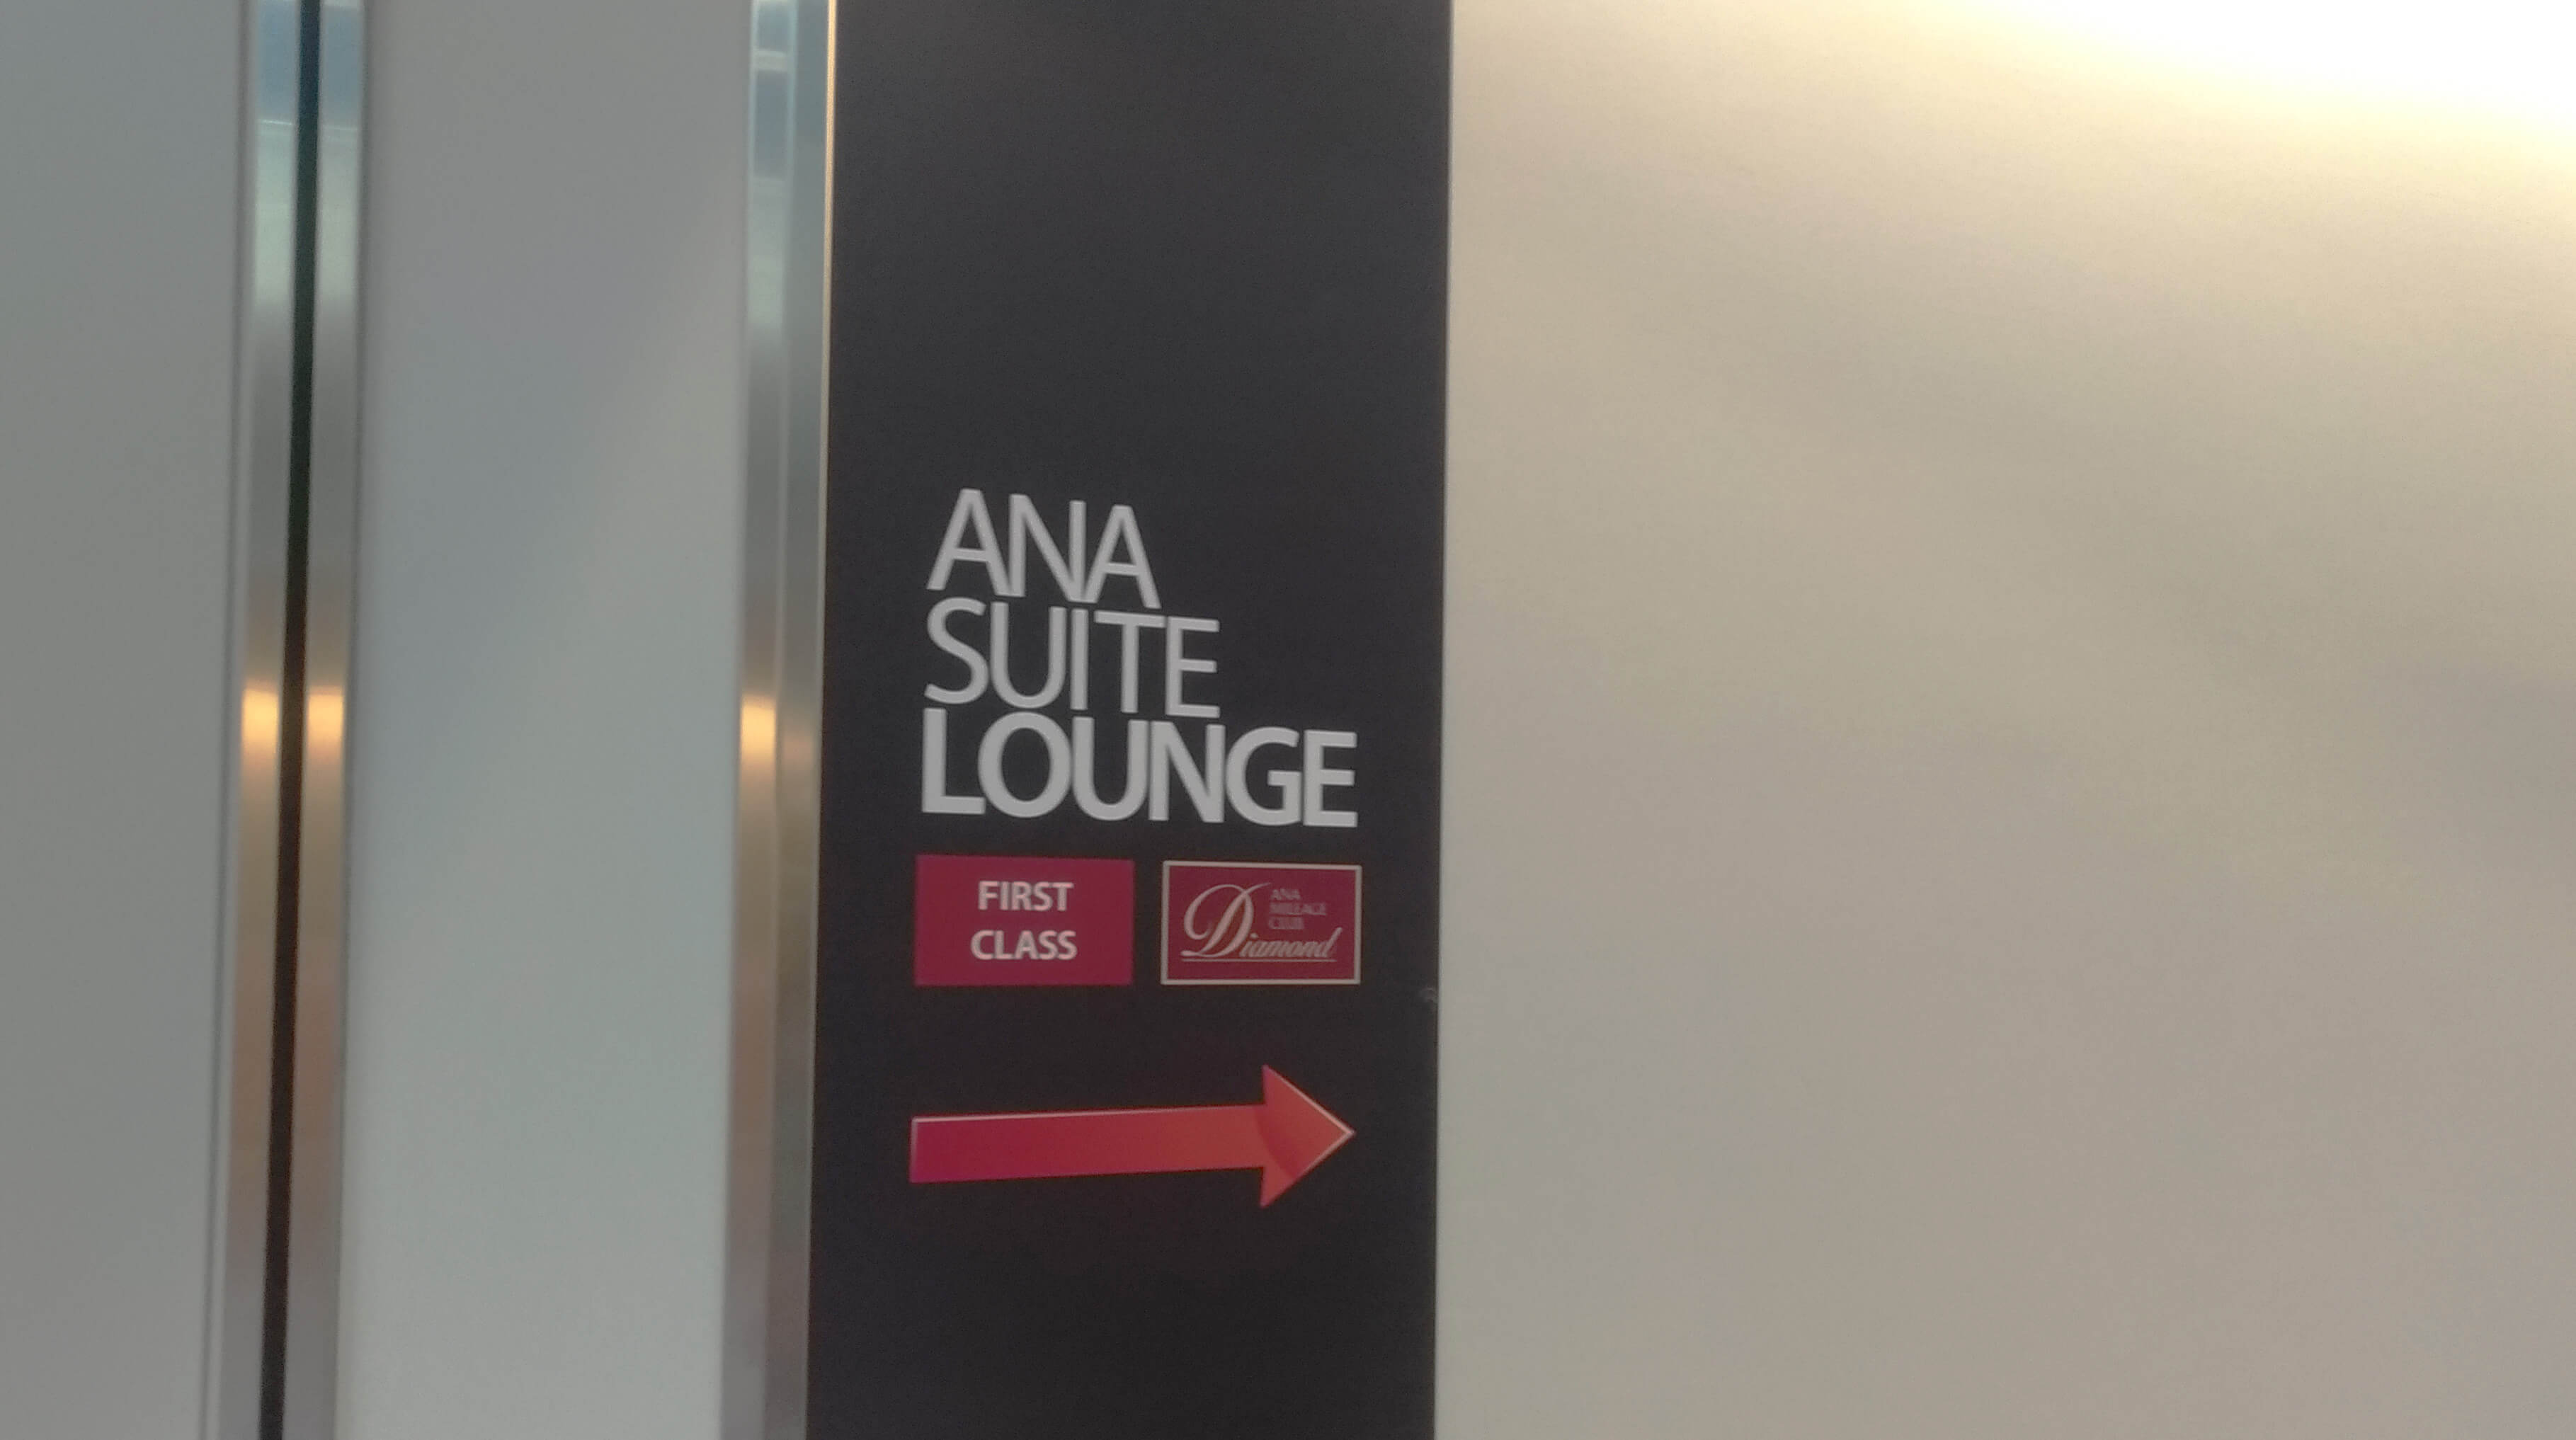 ANA-SUITE-LOUNGE2